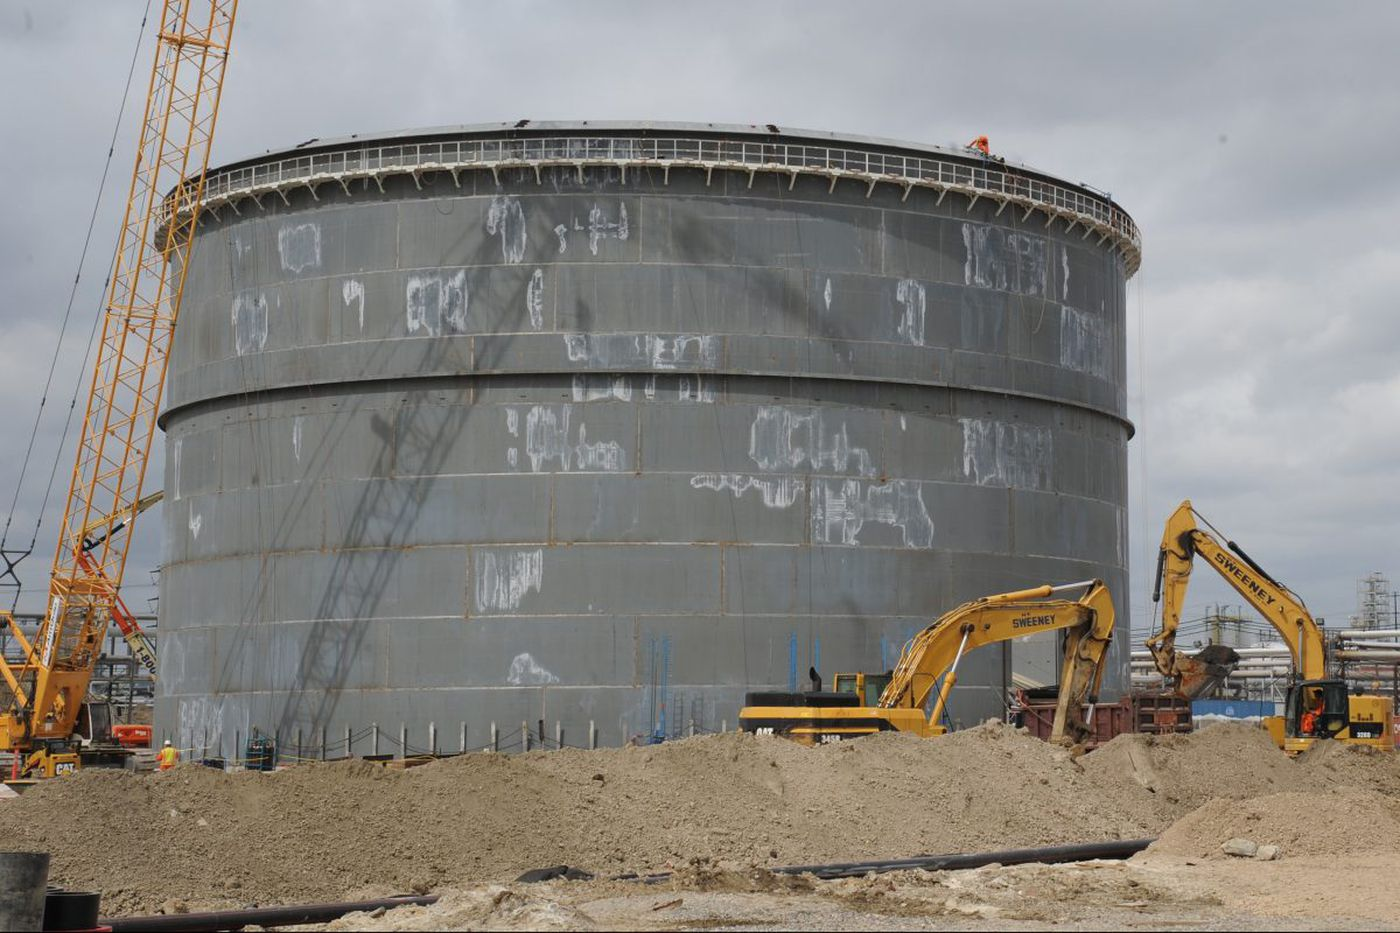 Marcus Hook upgrades will boost Sunoco's tax bill by $4.8 million